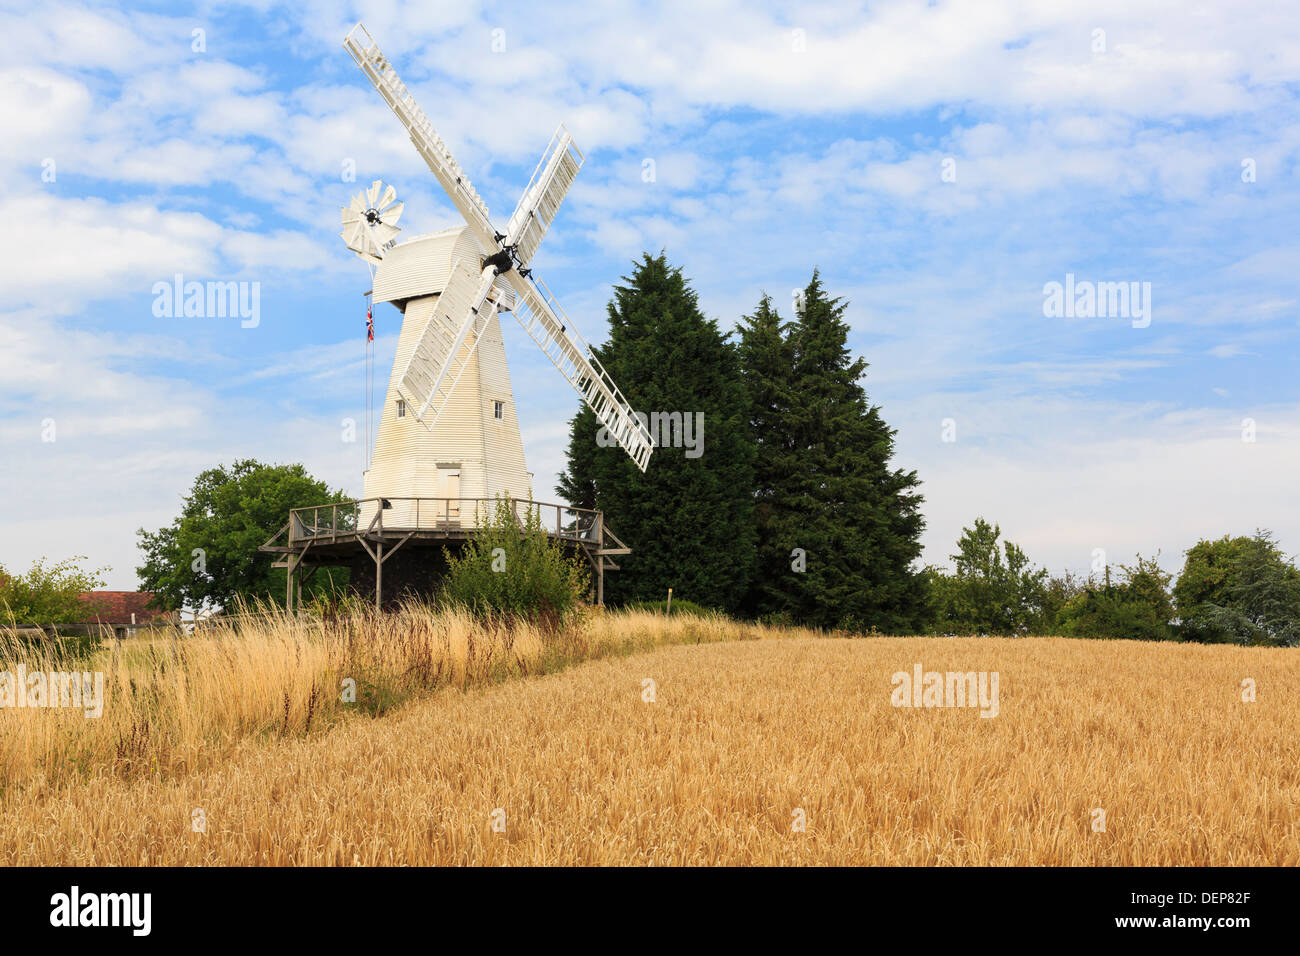 19th century Kentish smock mill restored working wooden windmill beyond a field of Barley in English countryside. Woodchurch Kent England UK Britain - Stock Image